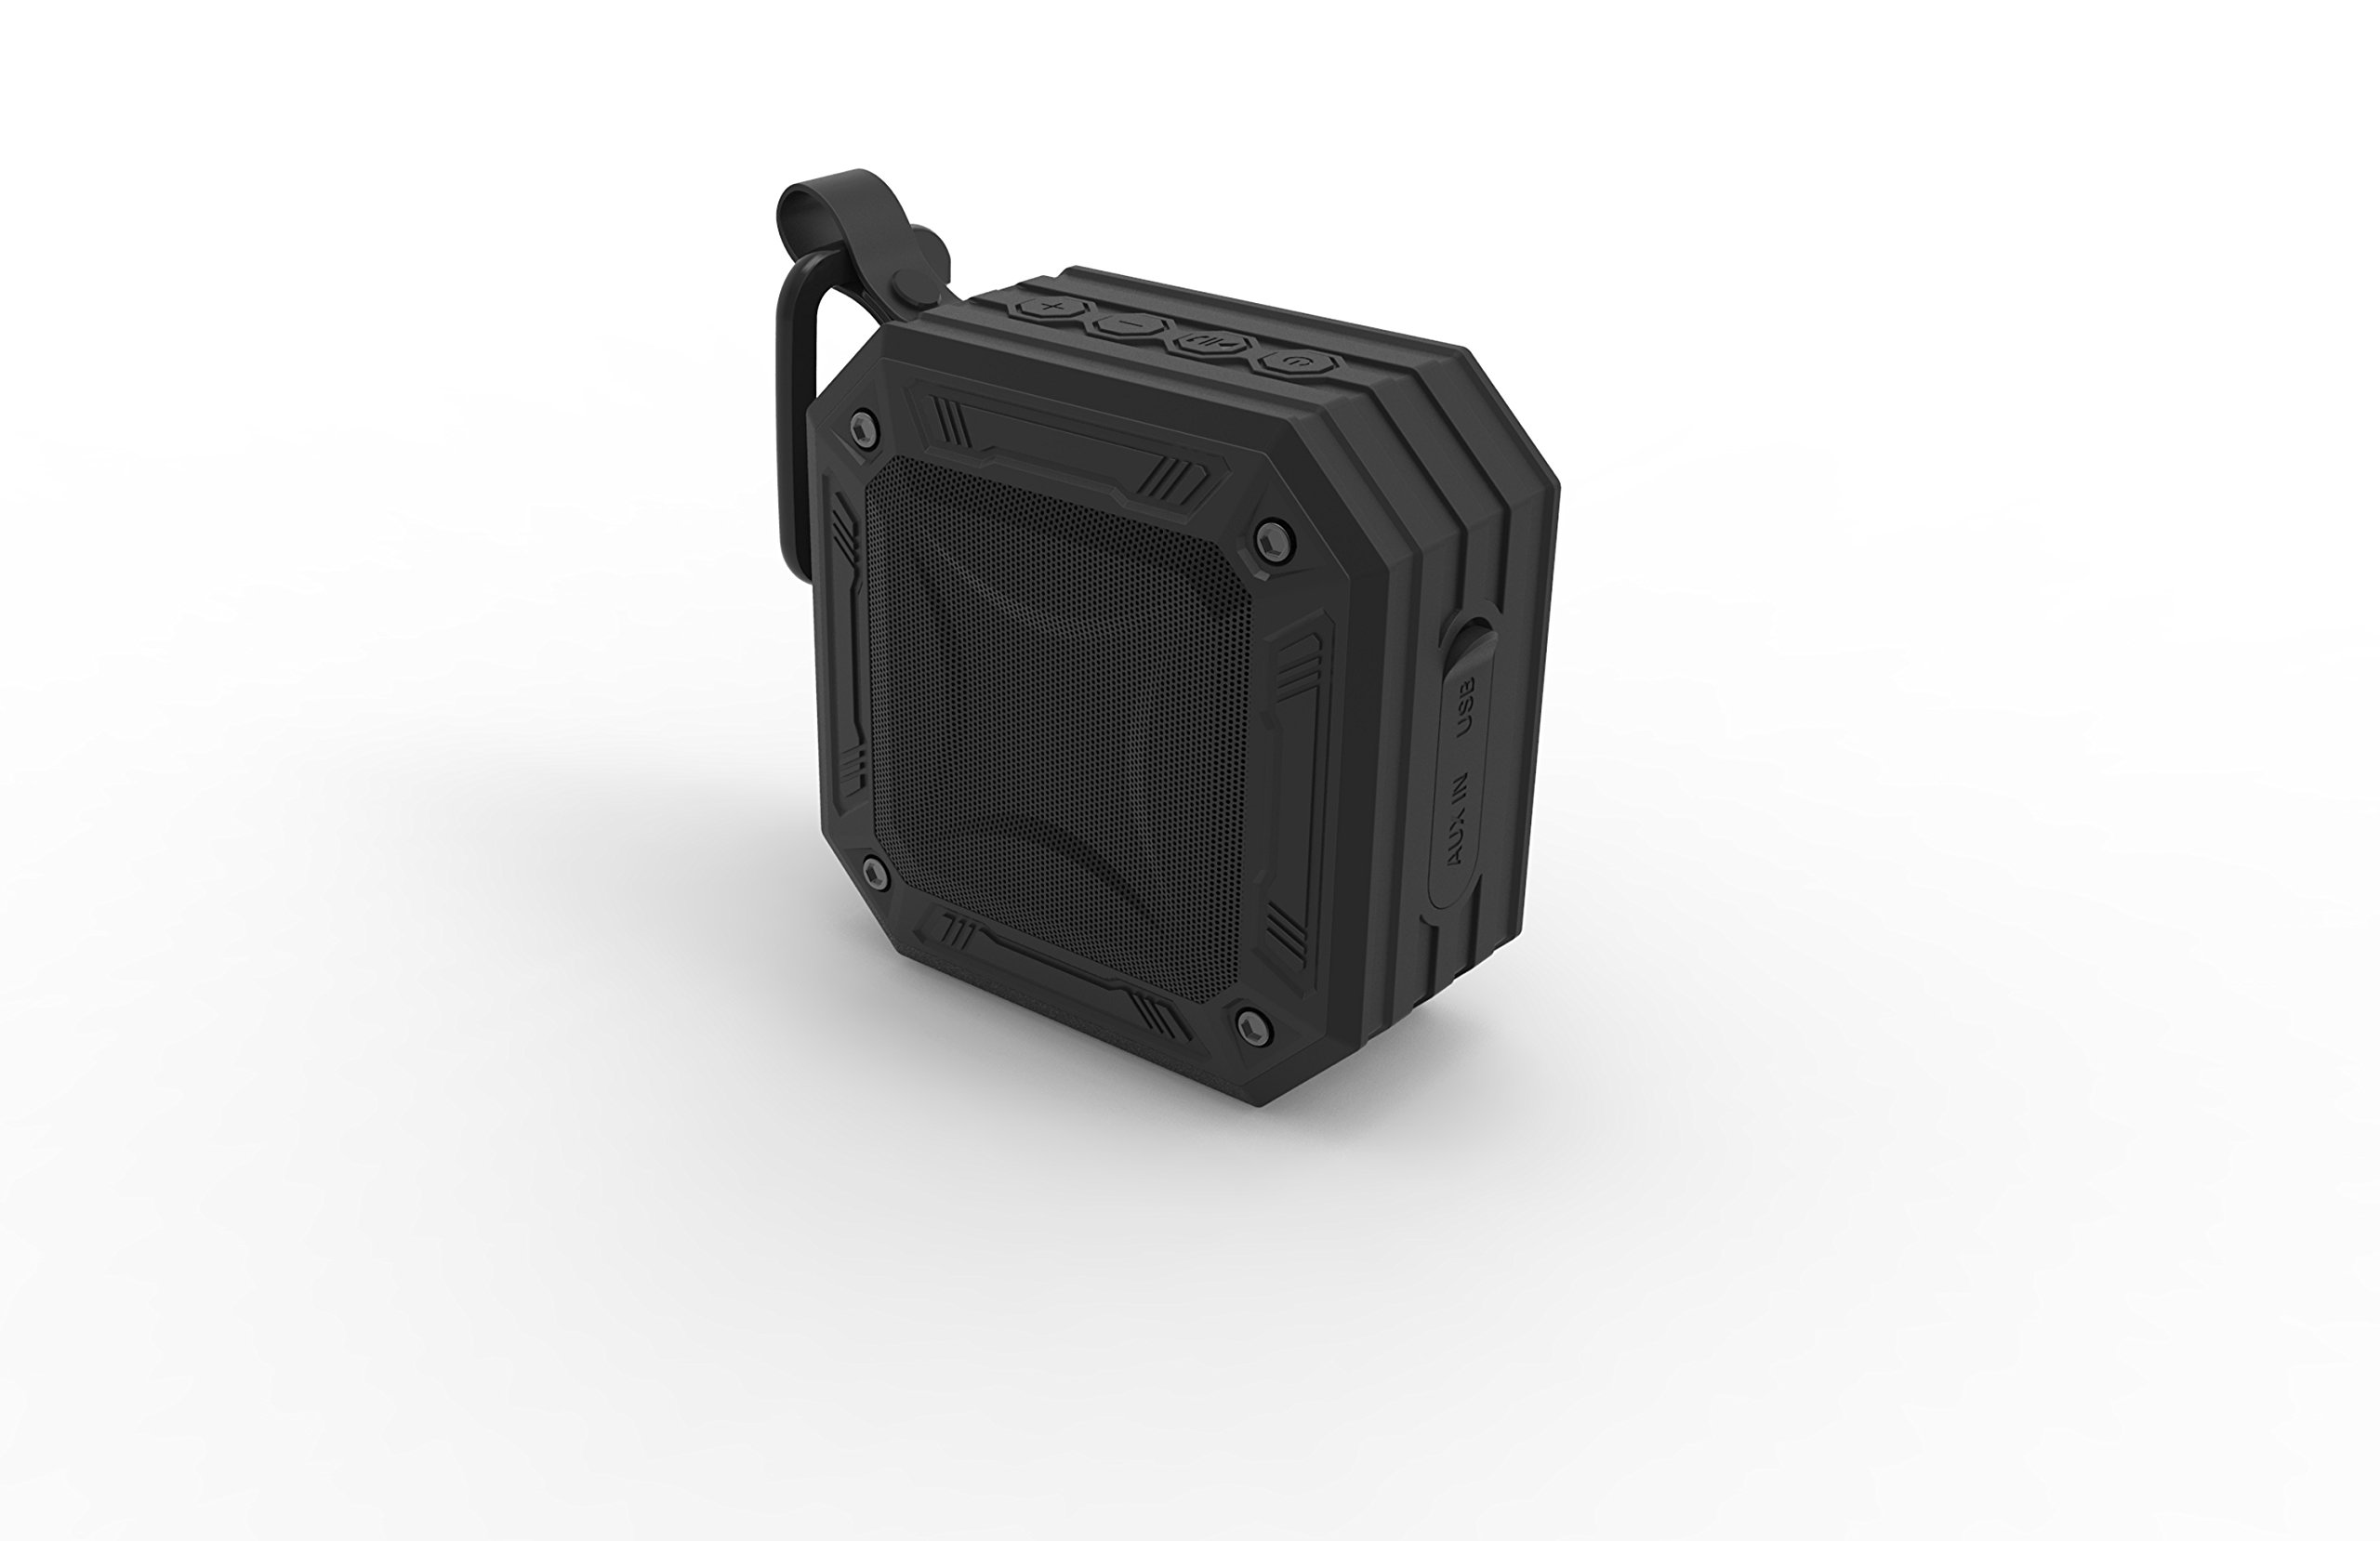 TECHQ HyrdoSound Sport - Waterproof (IP67) Outdoor Bluetooth Speaker 5W - 16 hours of play time by TECHQ (Image #4)